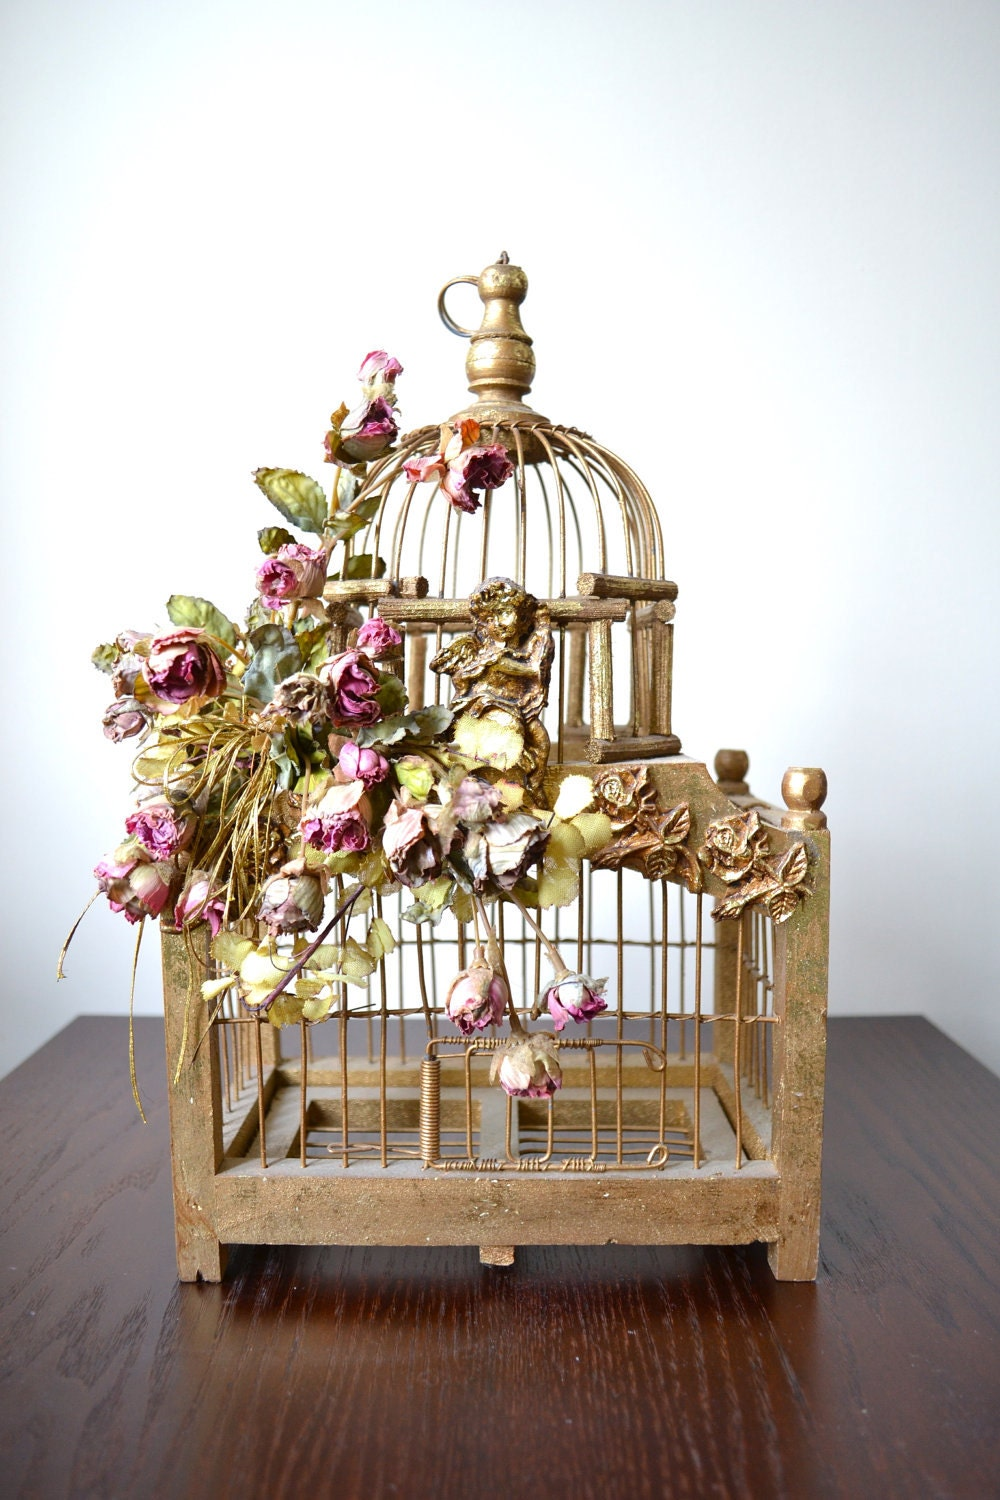 Shop our best selection of Decorative Bird Cages at Hayneedle, where you can buy online while you explore our room designs and curated looks for tips, ideas & inspiration to help you along the way. Find the perfect pet supplies to help take care of your animals - and your home.